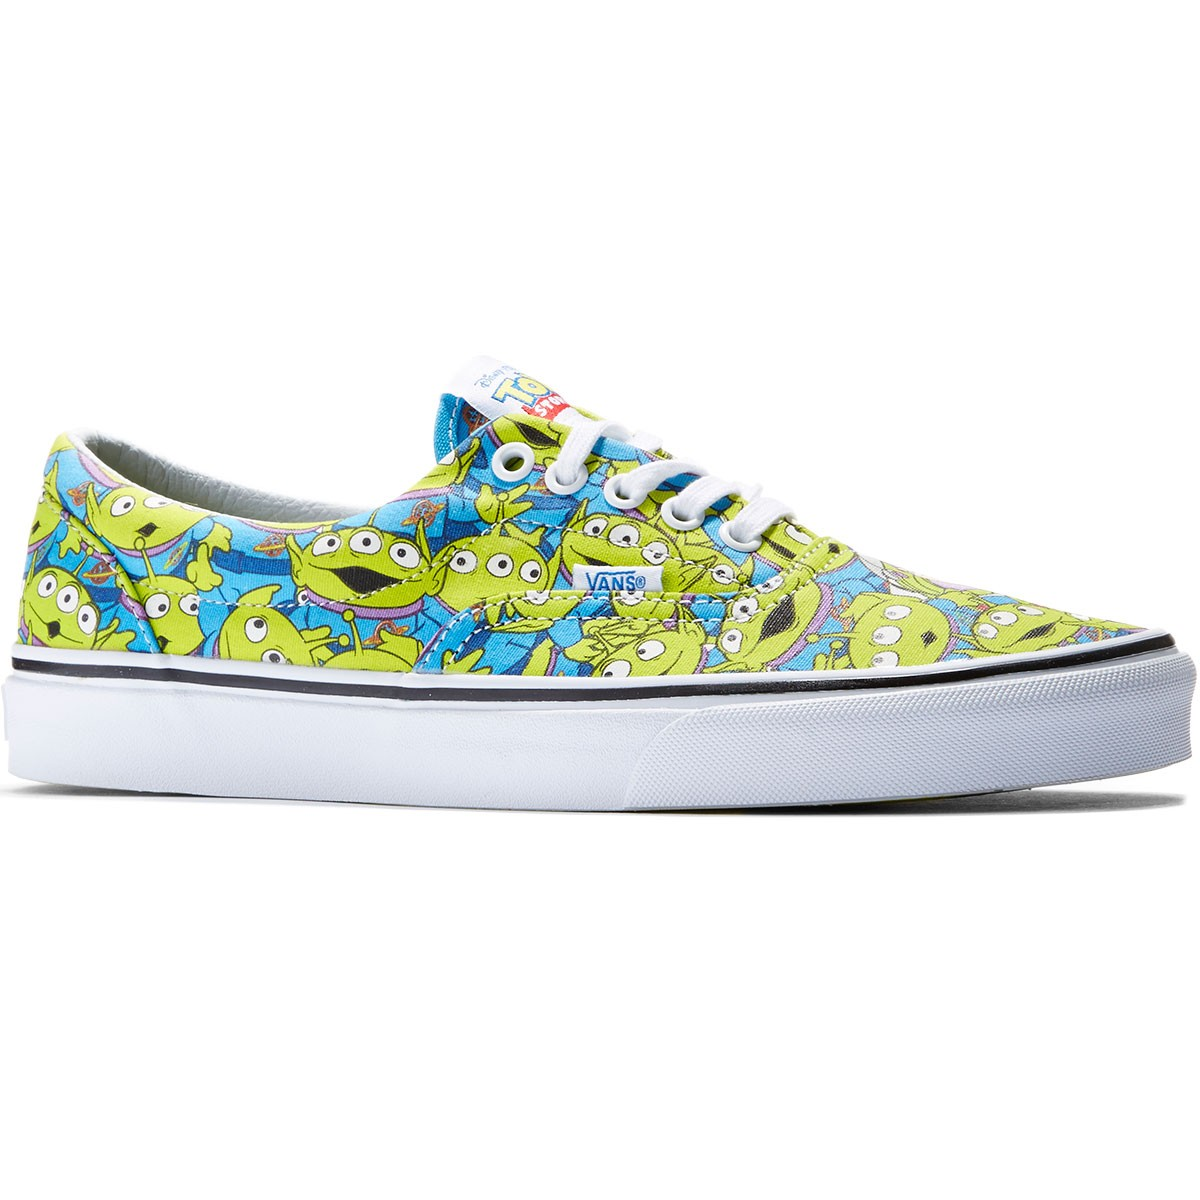 Era X Vans Disney Shoes Story Toy qIqgxAwT